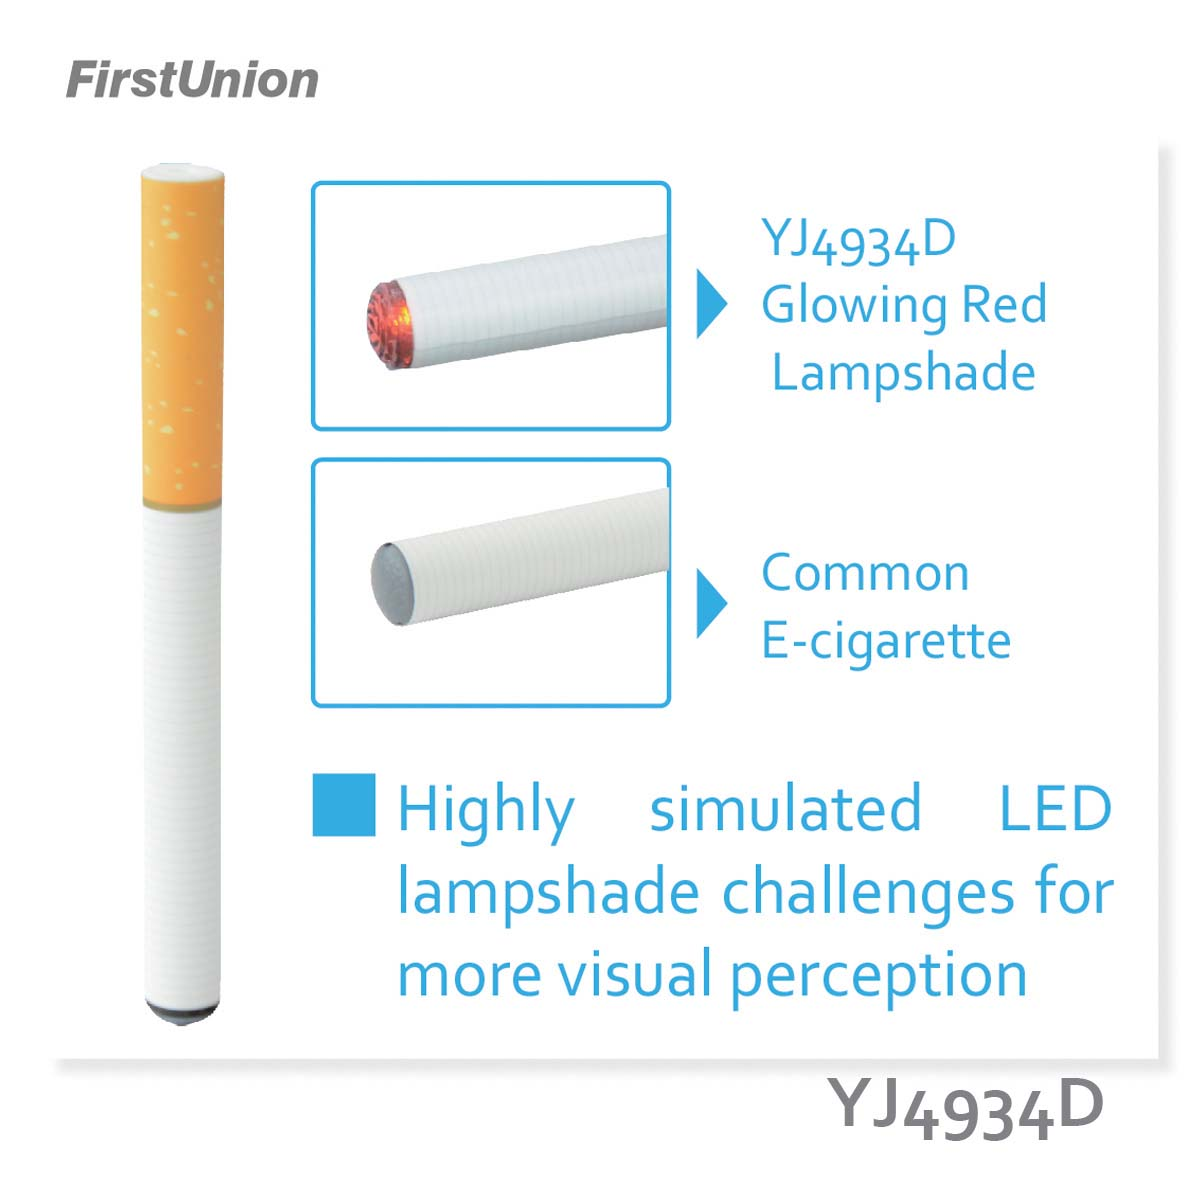 Firstunion new disposable atomizer e-cig YJ4934D clear choice electronic cigarette